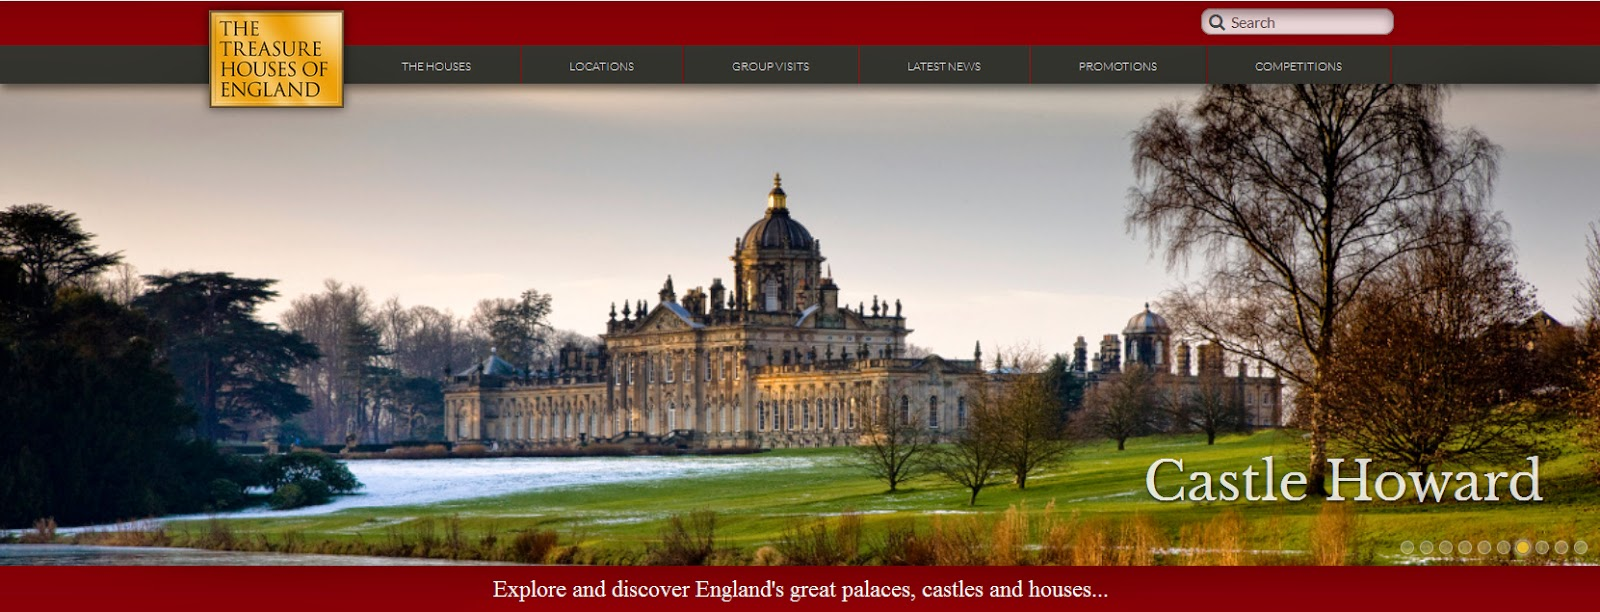 http://www.treasurehouses.co.uk/houses/Castle+Howard